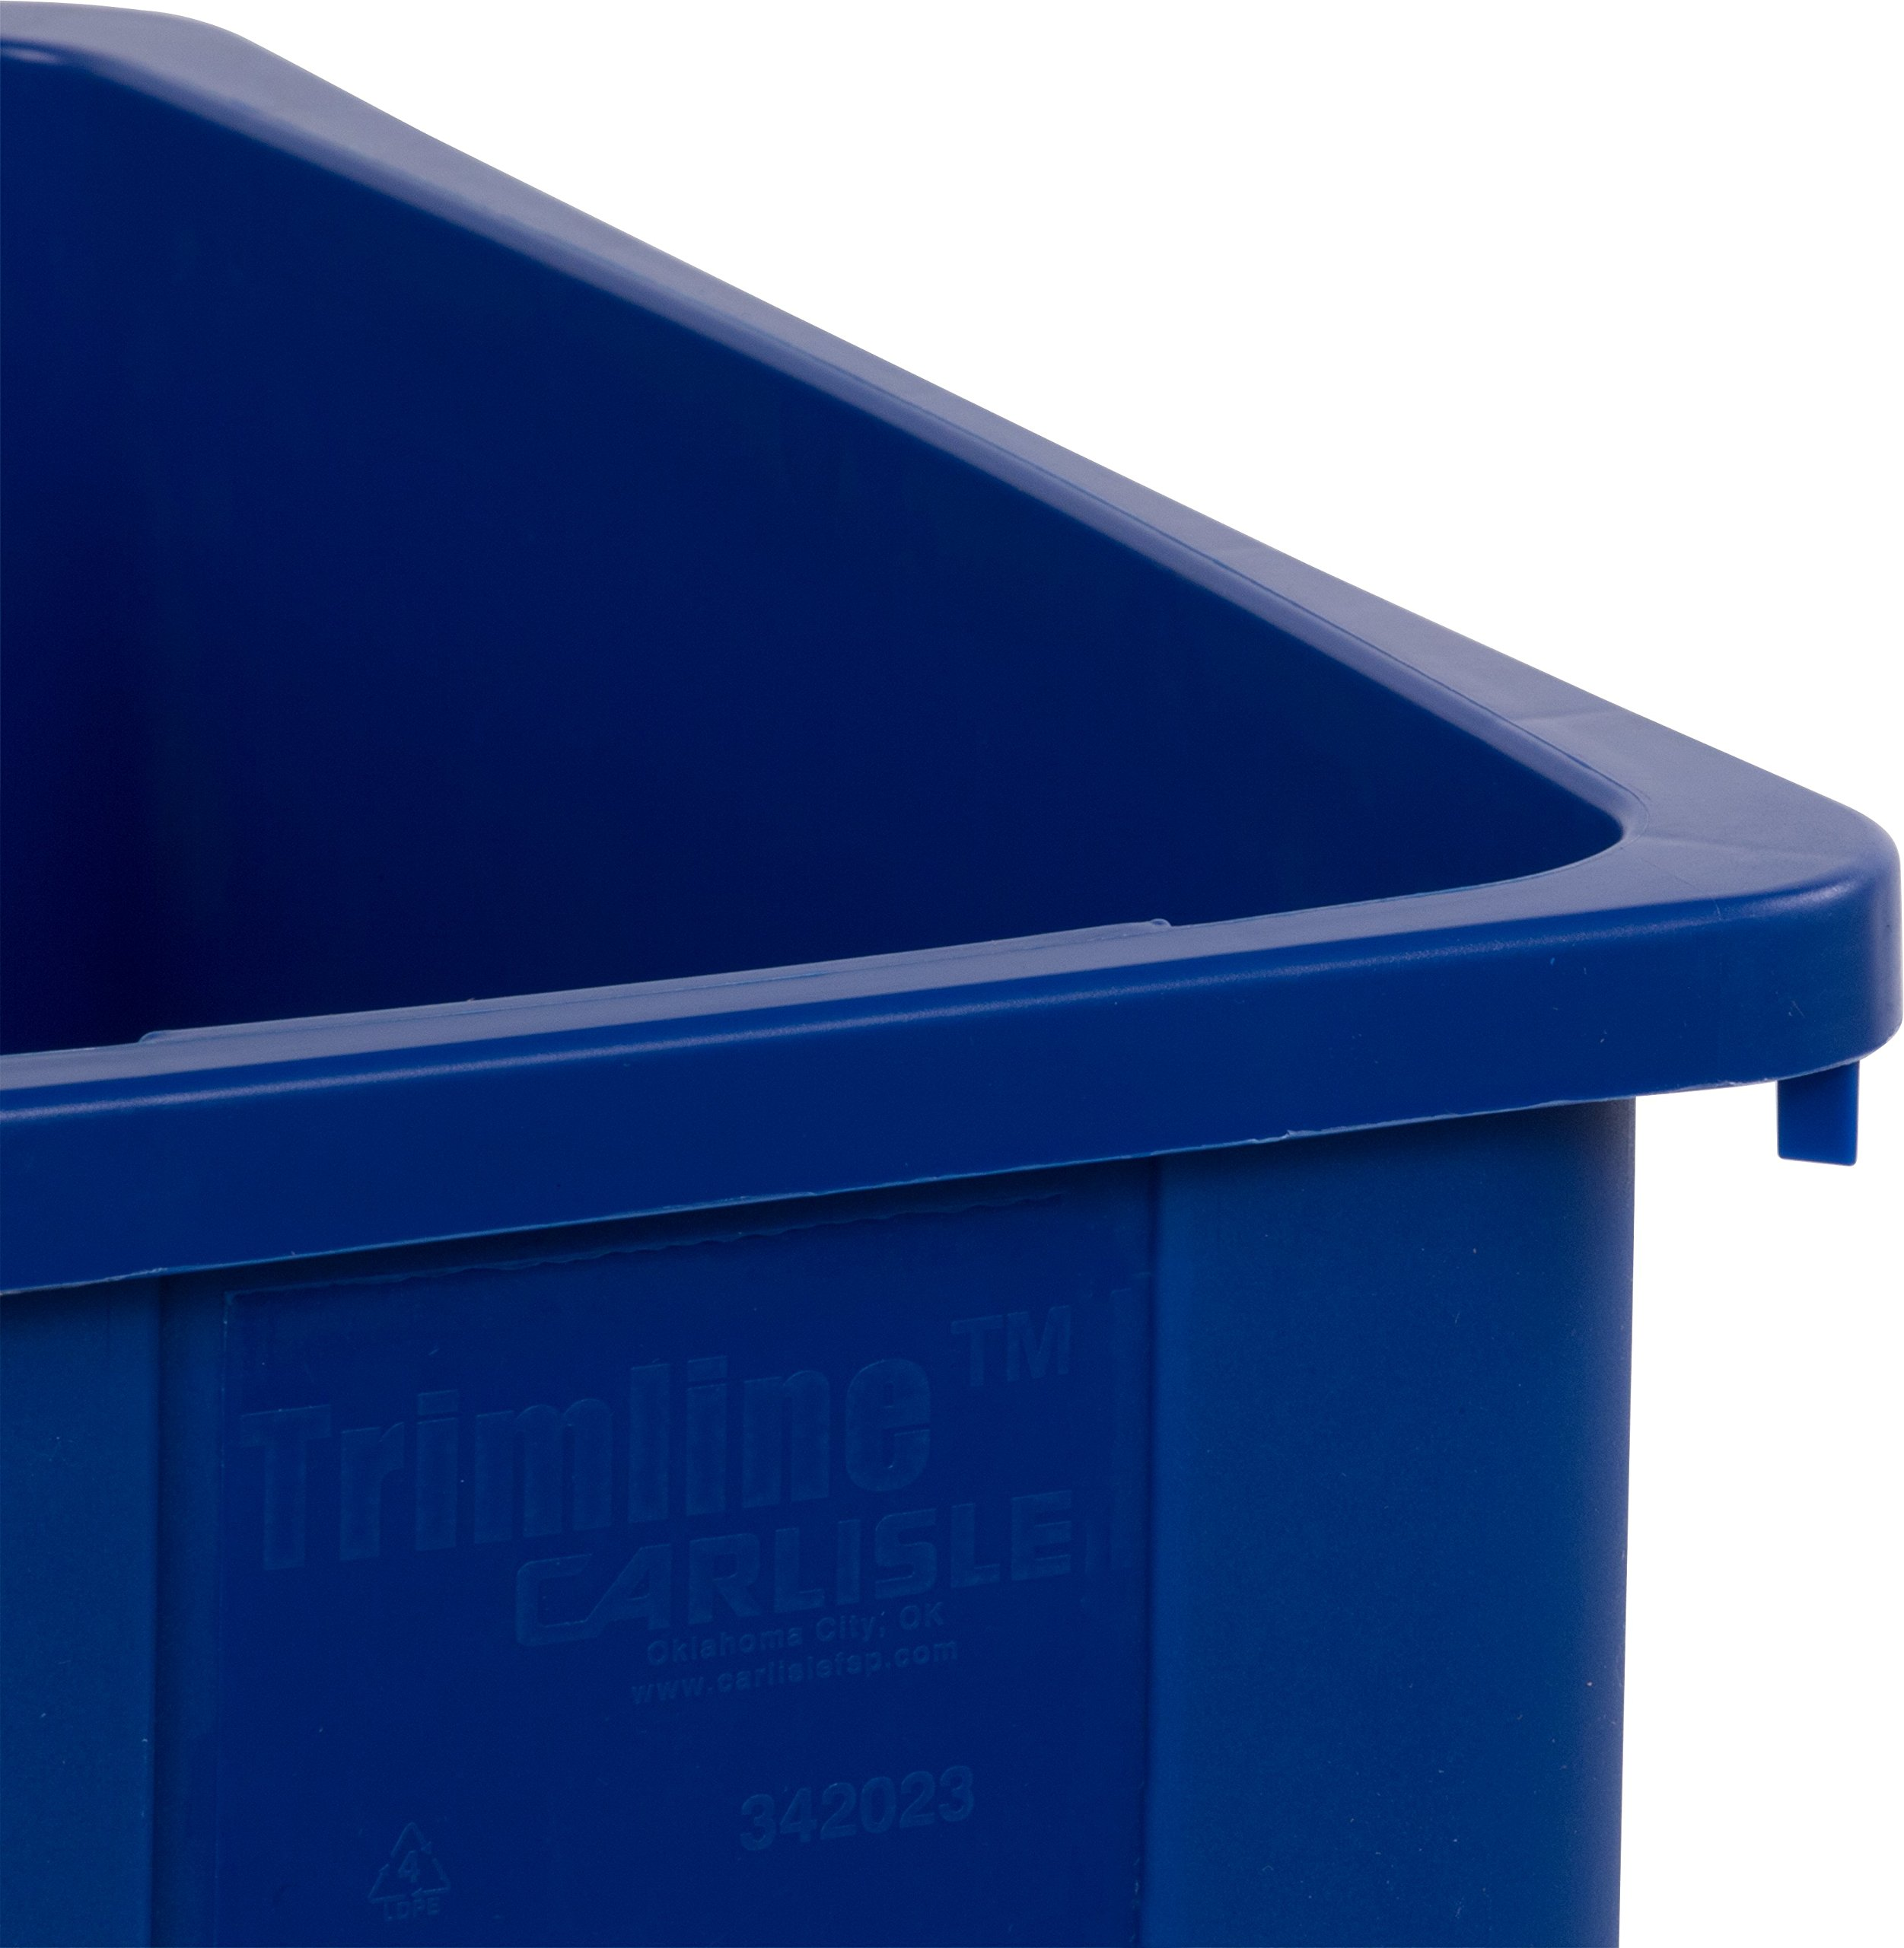 Carlisle 342023REC14 TrimLine LLDPE Recycle Can, 23 Gallon Capacity, 20'' Length x 11'' Width x 29.88'' Height, Blue by Carlisle (Image #3)